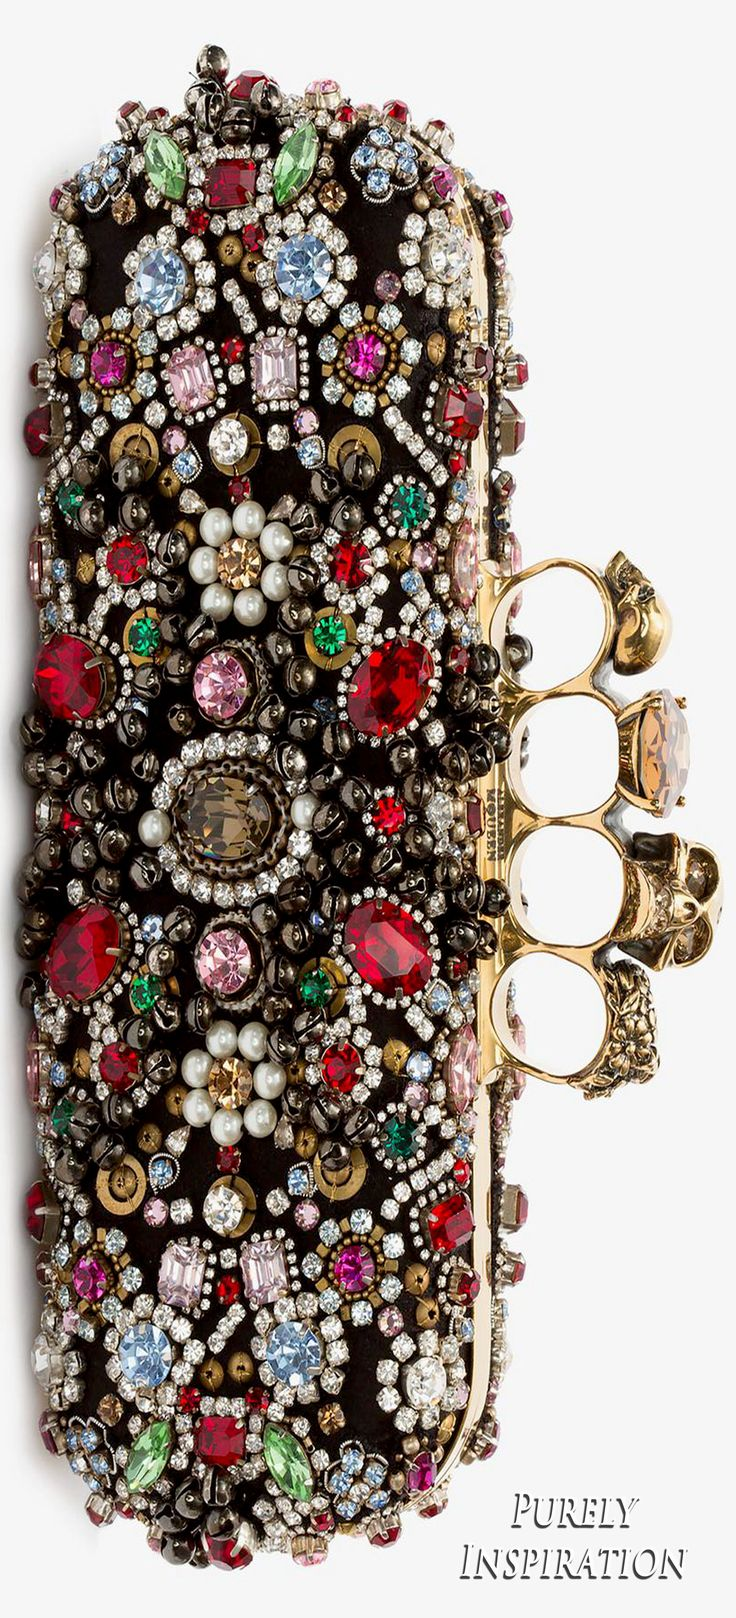 Alexander McQueen Jeweled Knuckle Box Clutch | Purely Inspiration Clothing, Shoes & Jewelry : Women : Handbags & Wallets : amzn.to/2jBKNH8 Clothing, Shoes & Jewelry - women's handbags & wallets - http://amzn.to/2j9xWYI